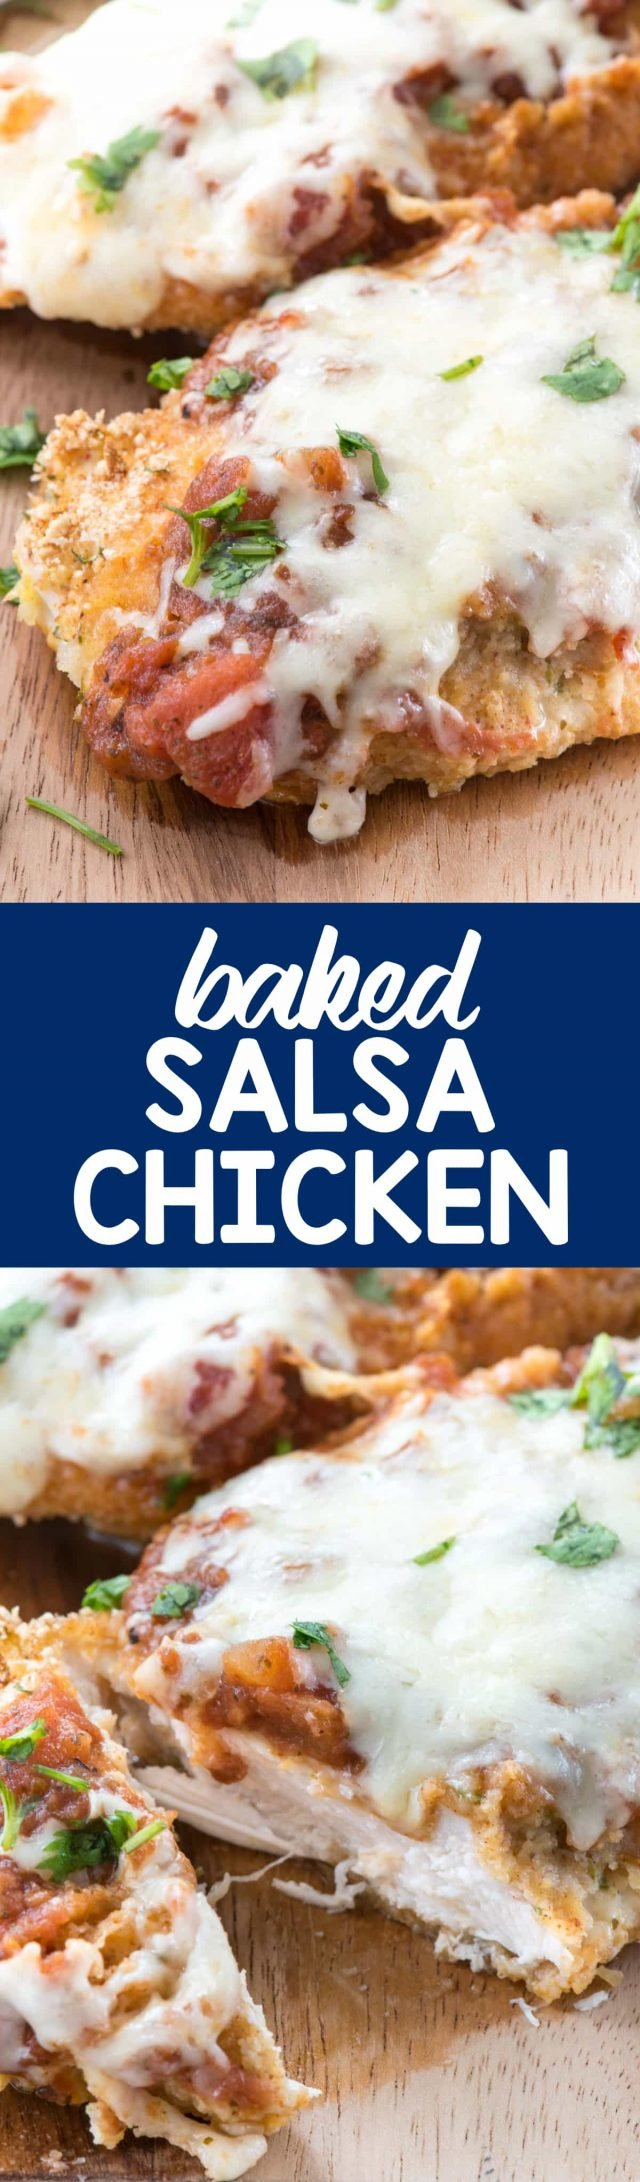 Baked Salsa Chicken - this easy chicken dinner recipe is perfect every time! Lightly breaded chicken is baked with salsa and cheese and comes out moist and tender. This recipe is adult and kid approved!